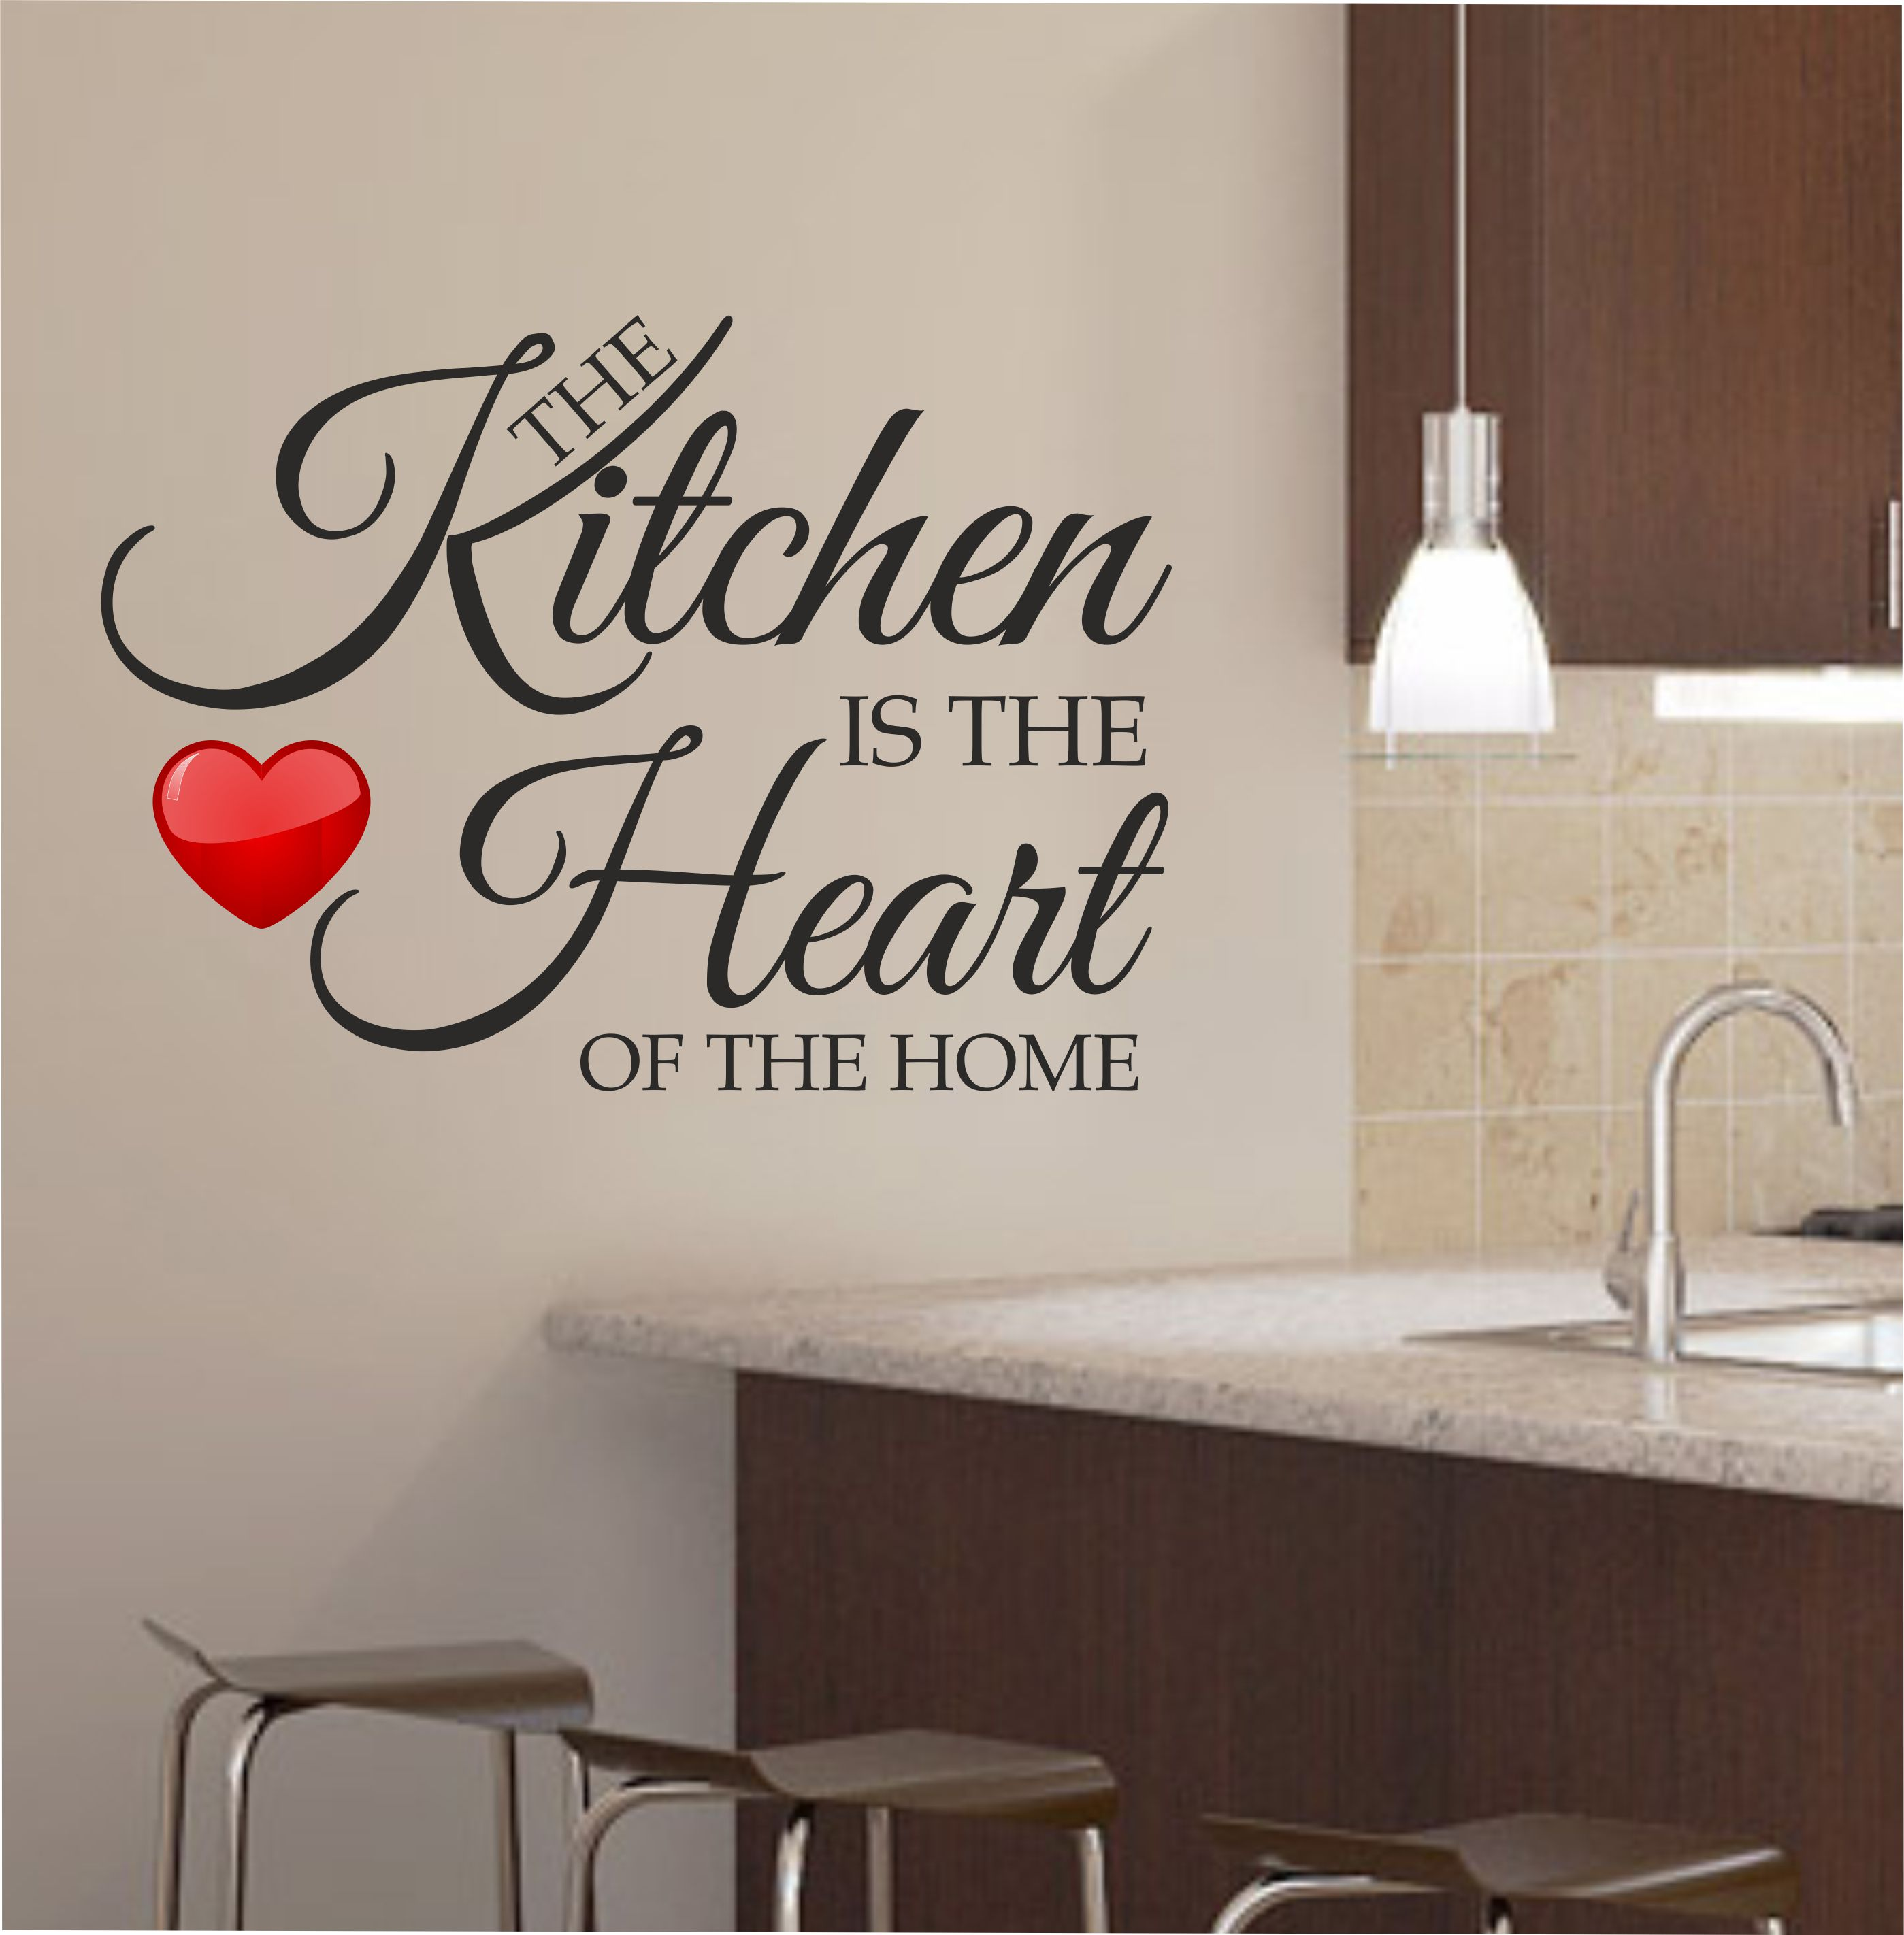 Kitchen wall art for a more fresh kitchen decor for Kitchen wall decor ideas